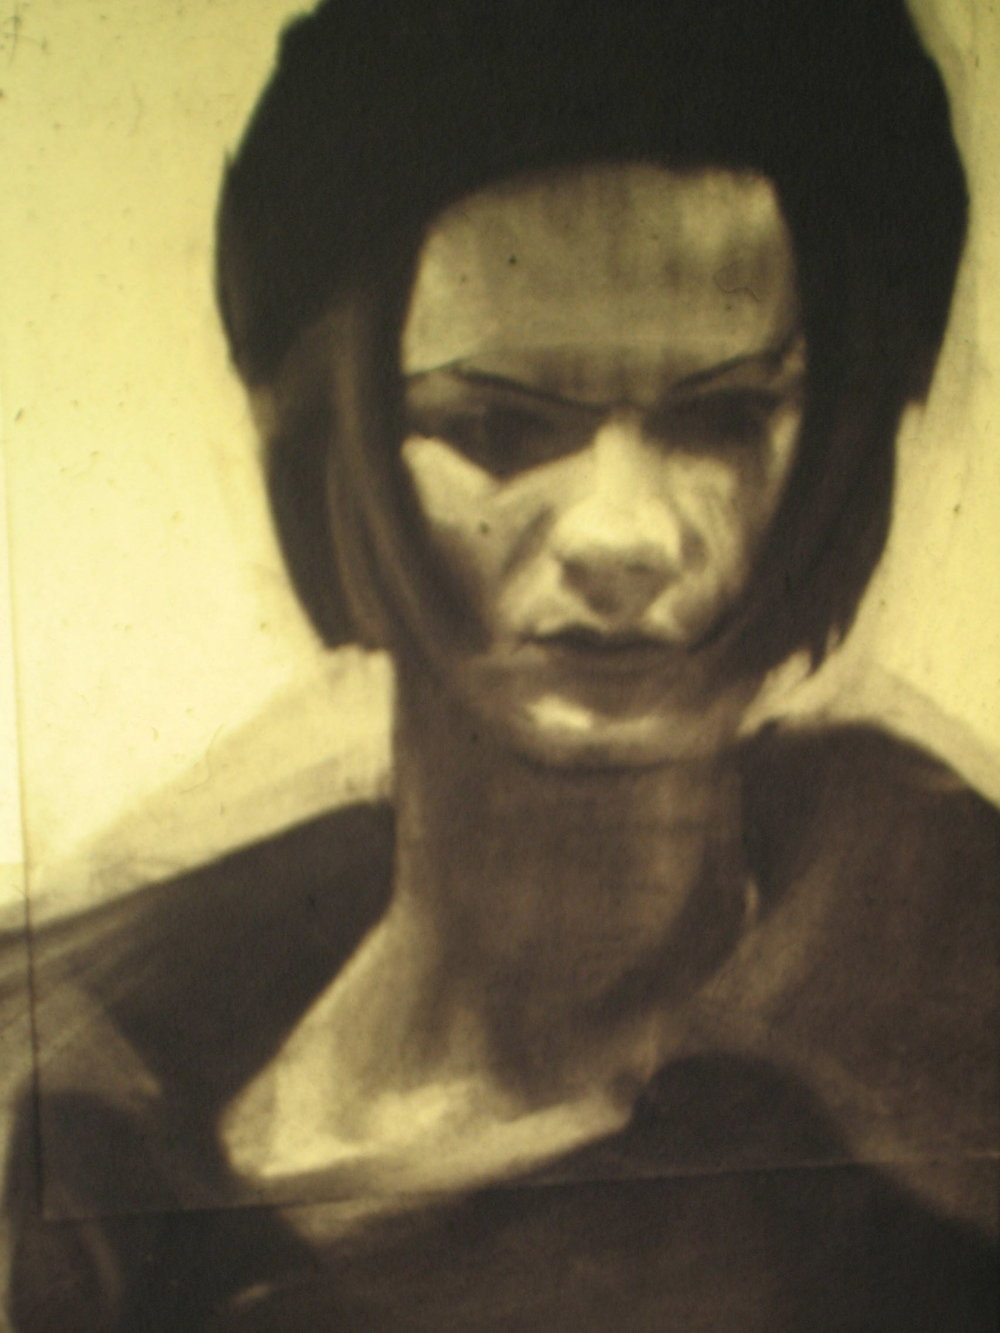 Ioanna 30 x 40 cms charcoal on paper 1991